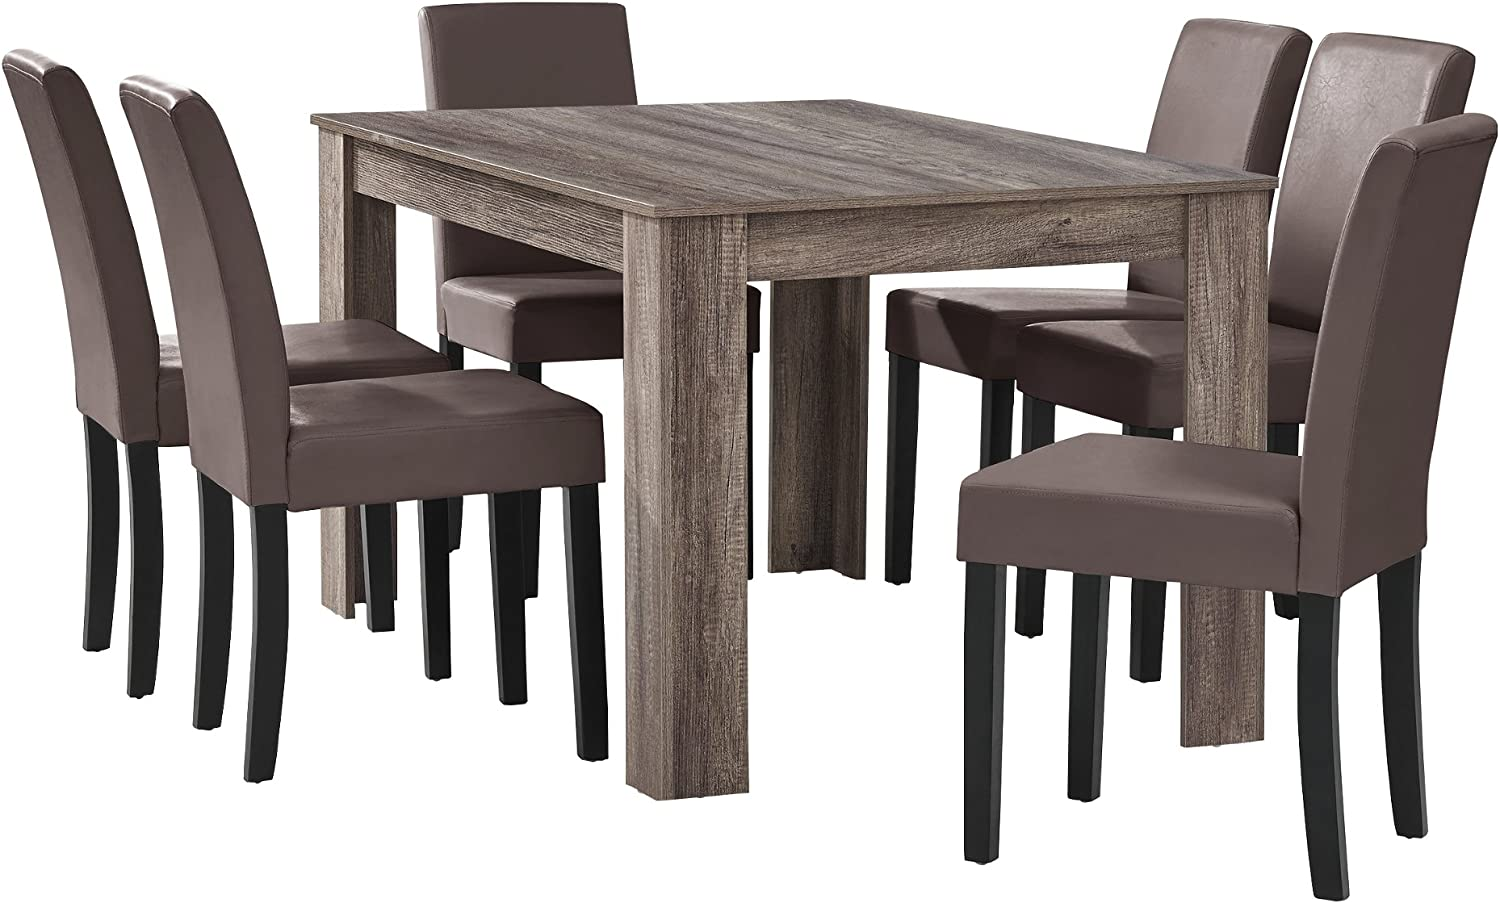 En Casa Antique Oak Dining Table With 6 Chairs Brown Faux Leather Padded 140 X 90 Cm Dining Room Amazon De Kuche Haushalt